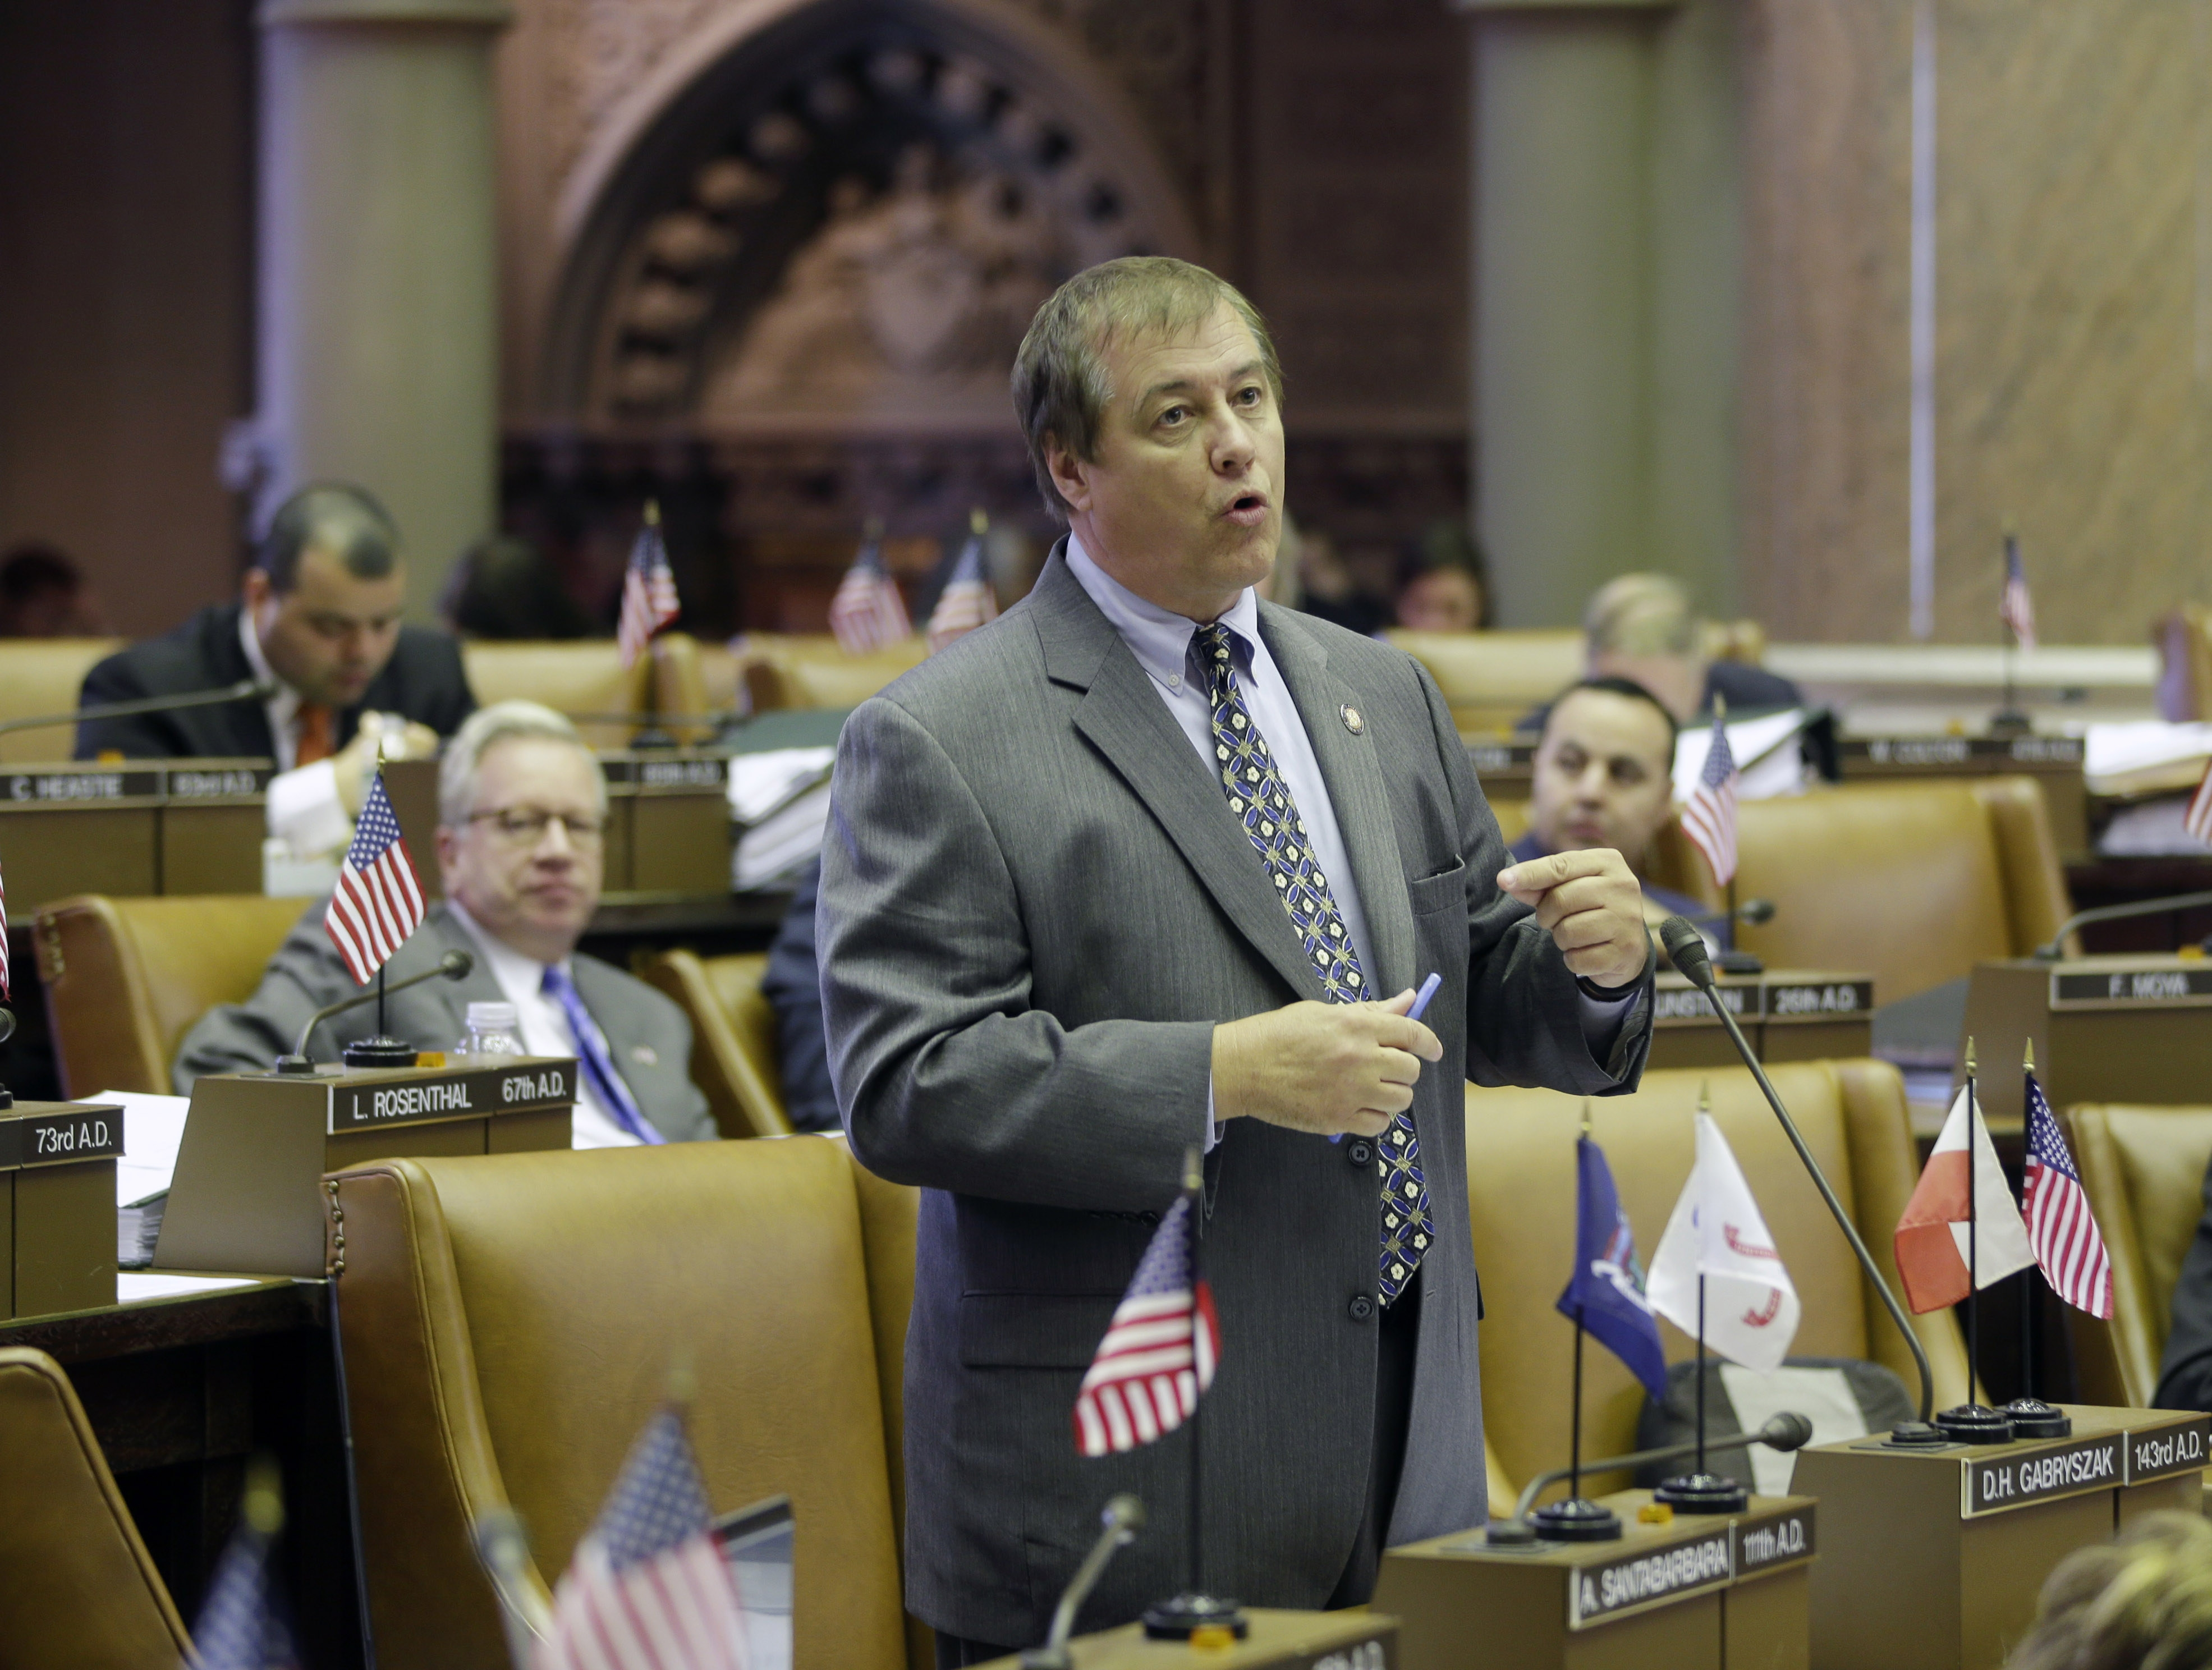 Former Assemblyman Dennis Gabryszak has denied the accusations against him.